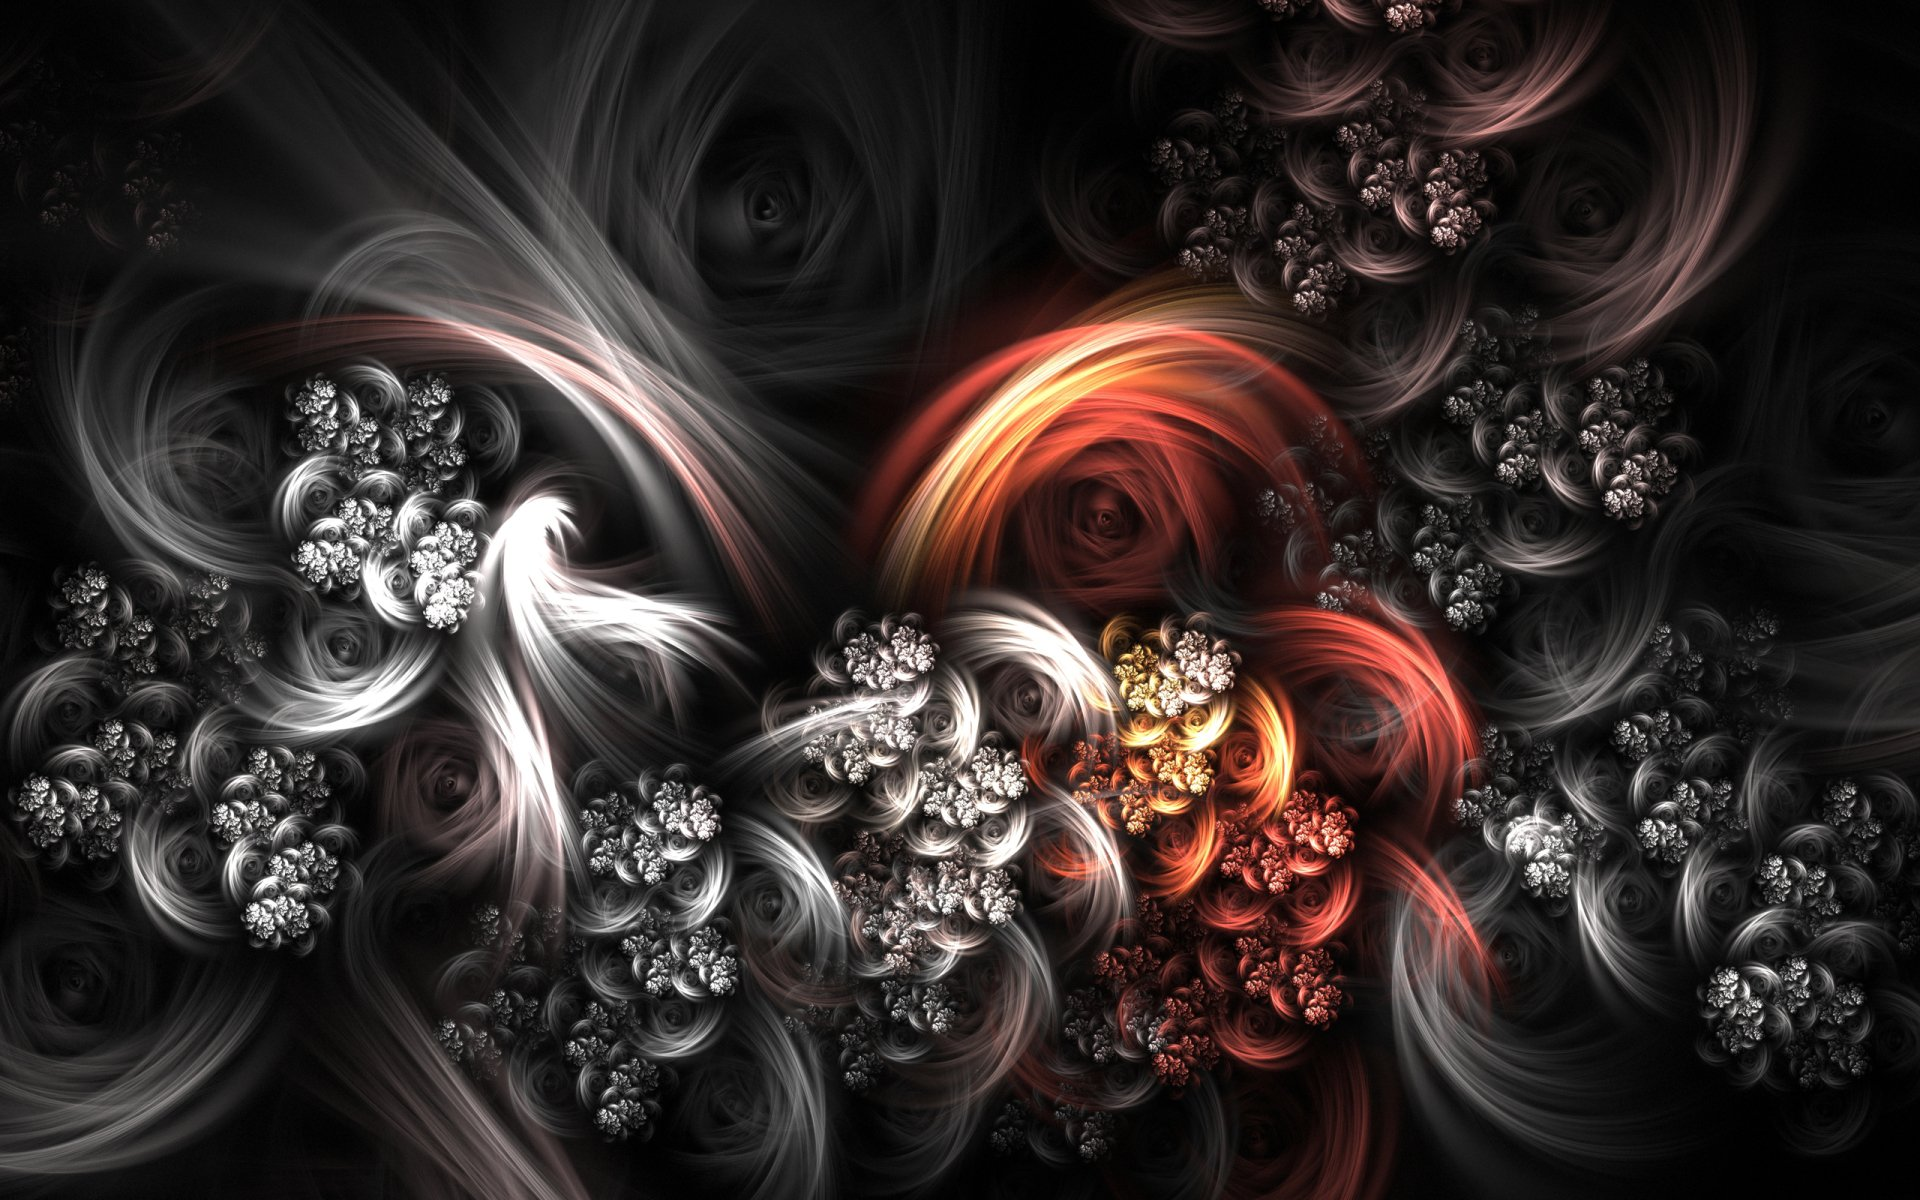 Abstract - Artistic  Wallpaper